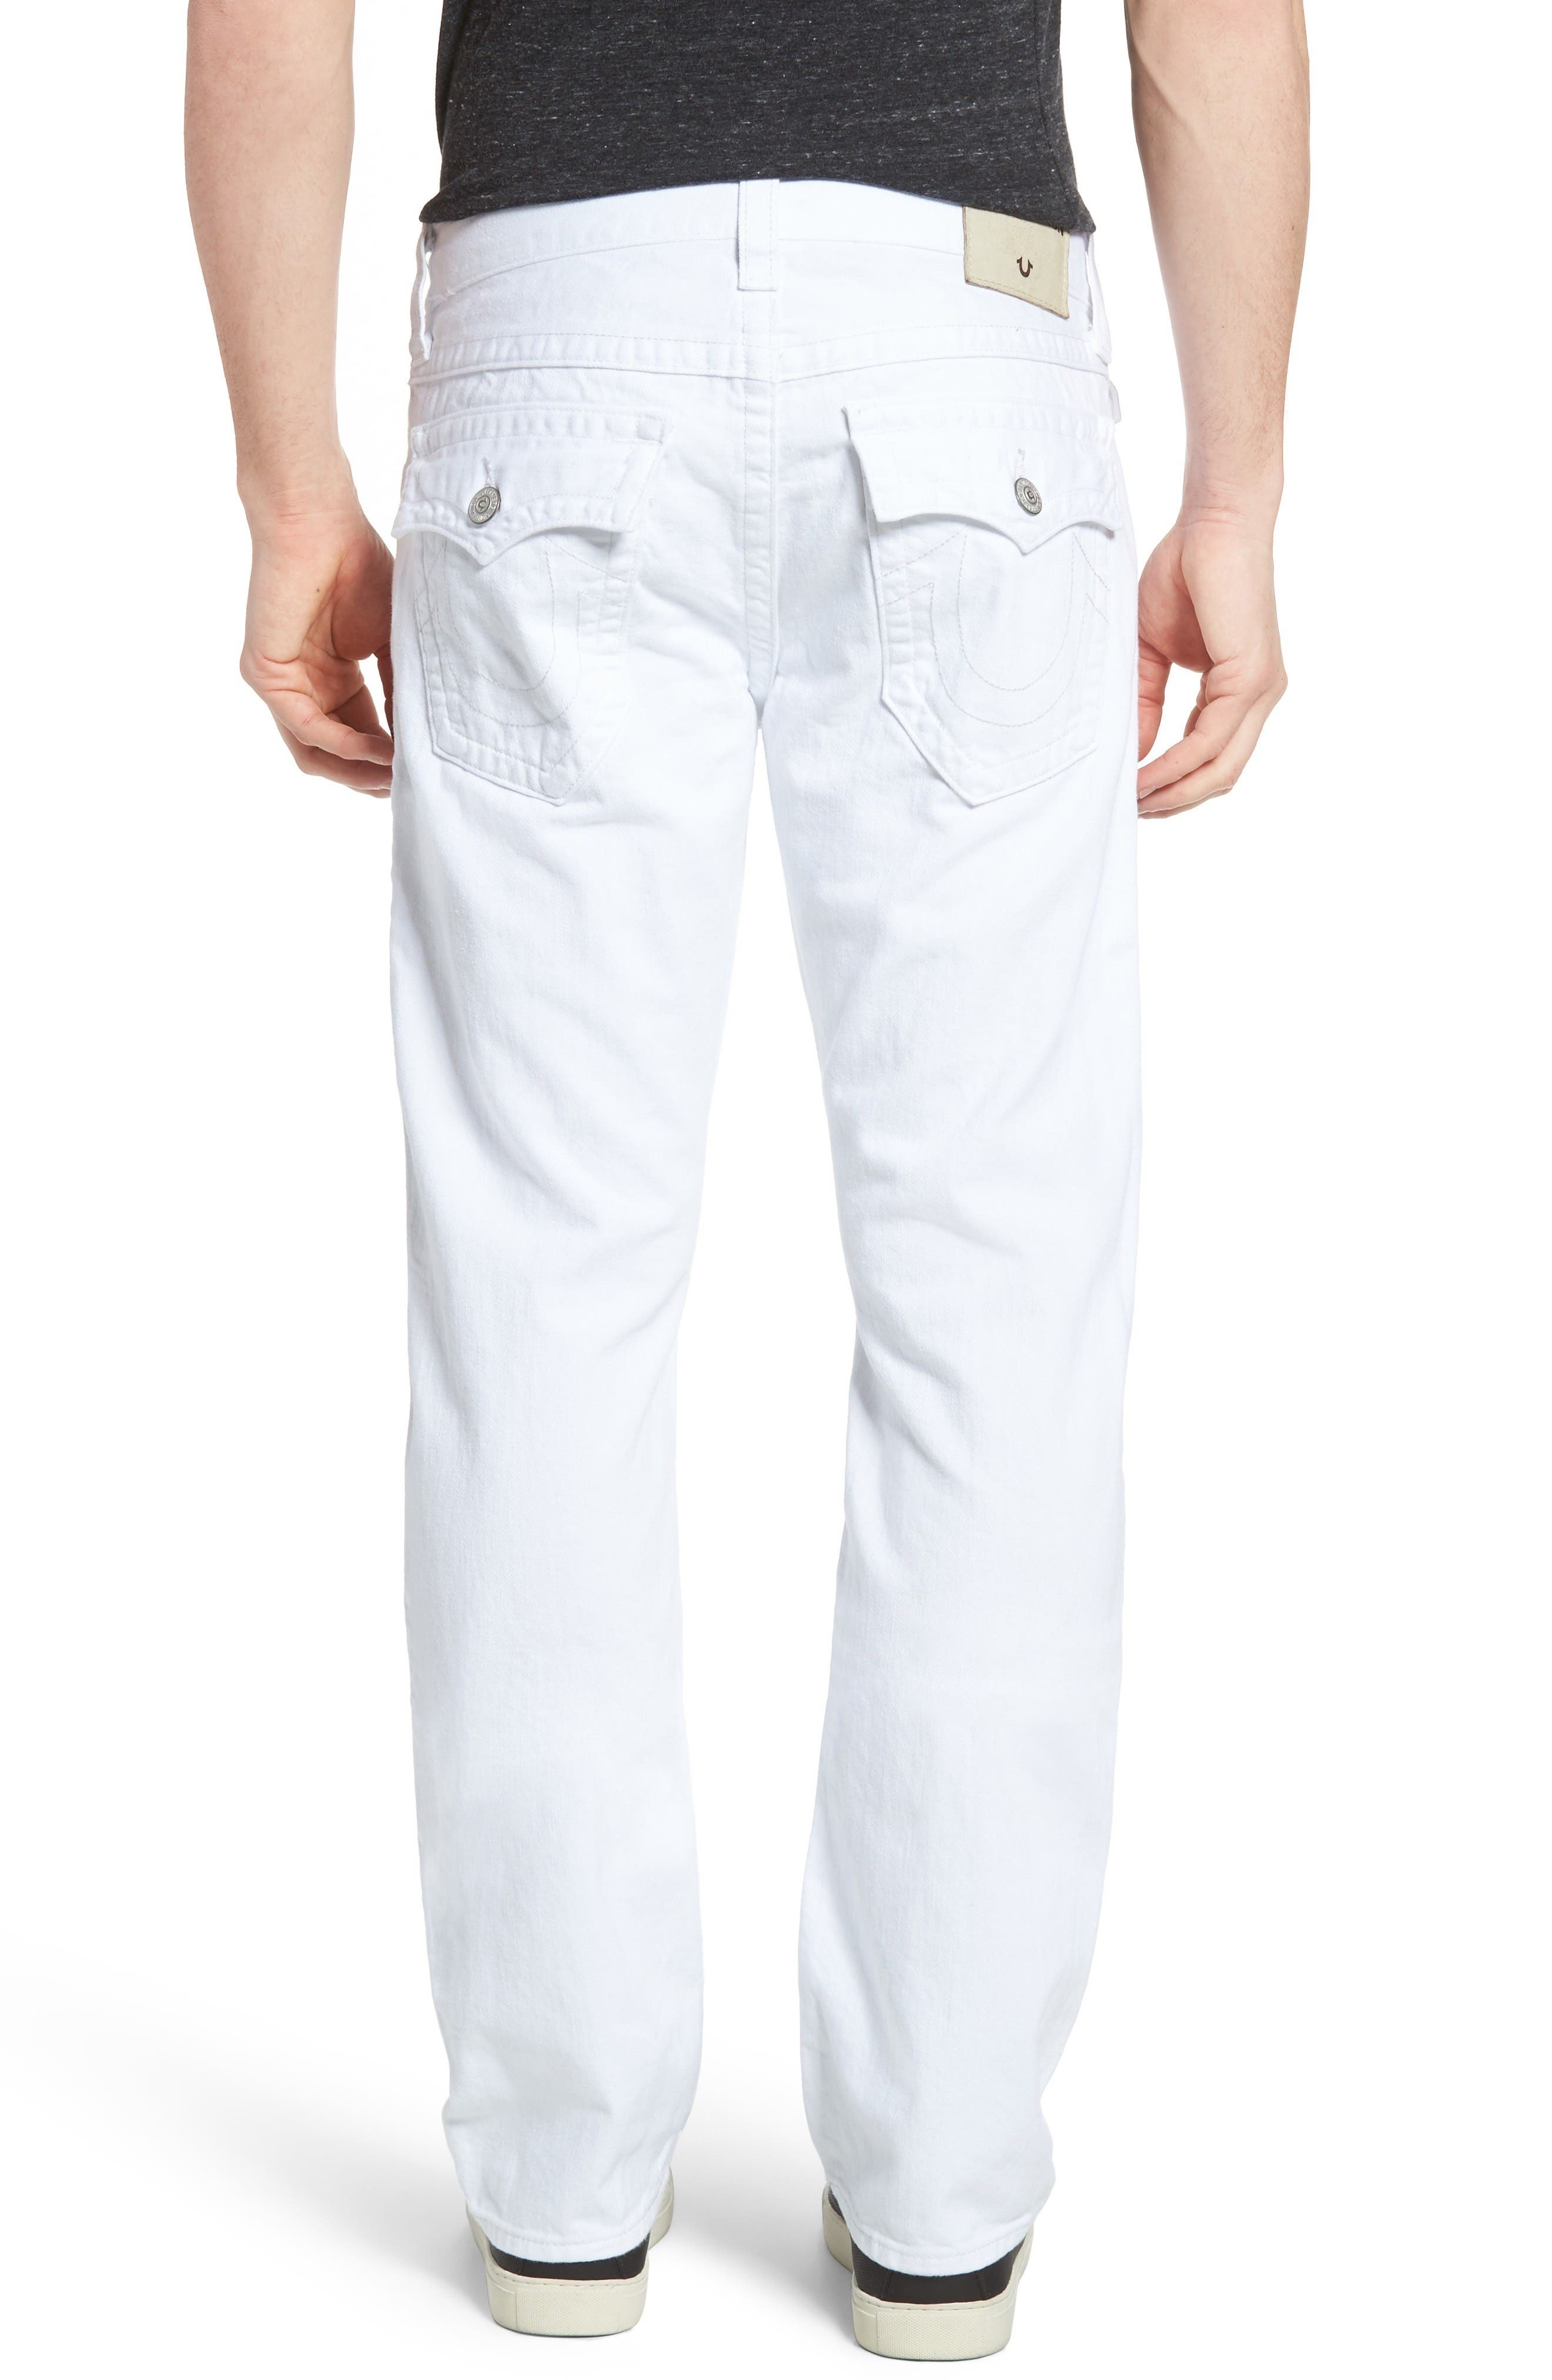 Ricky Relaxed Fit Jeans,                             Alternate thumbnail 2, color,                             Optic White